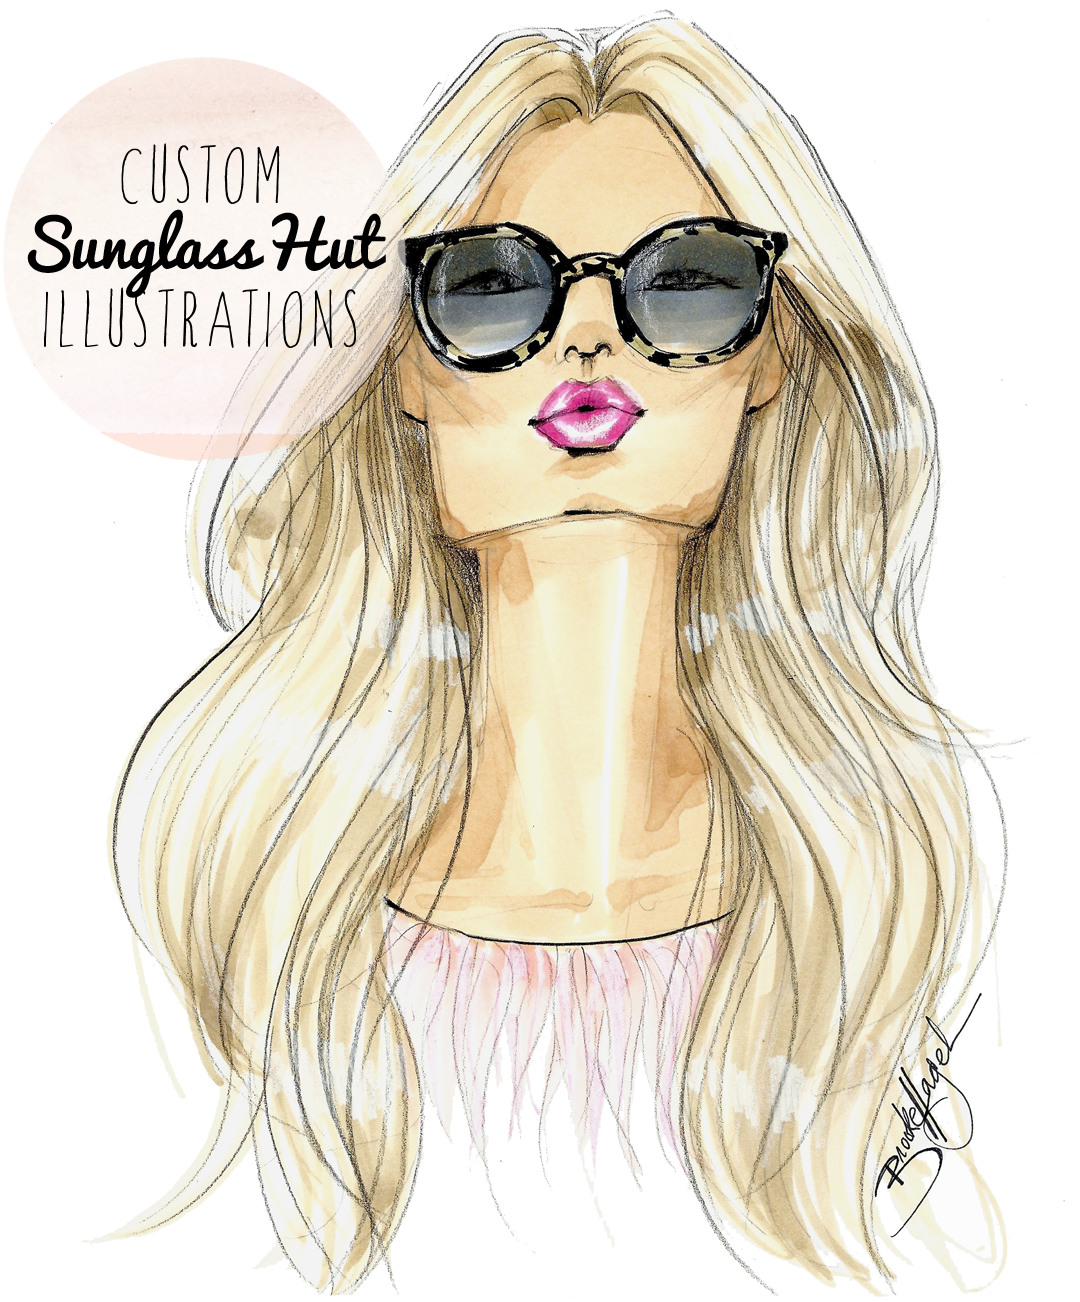 ea934d844b74 Custom fashion illustrations as Valentines were my month long project last  month commissioned by Sunglass Hut and Ray-Ban and today I m sharing a few  of my ...